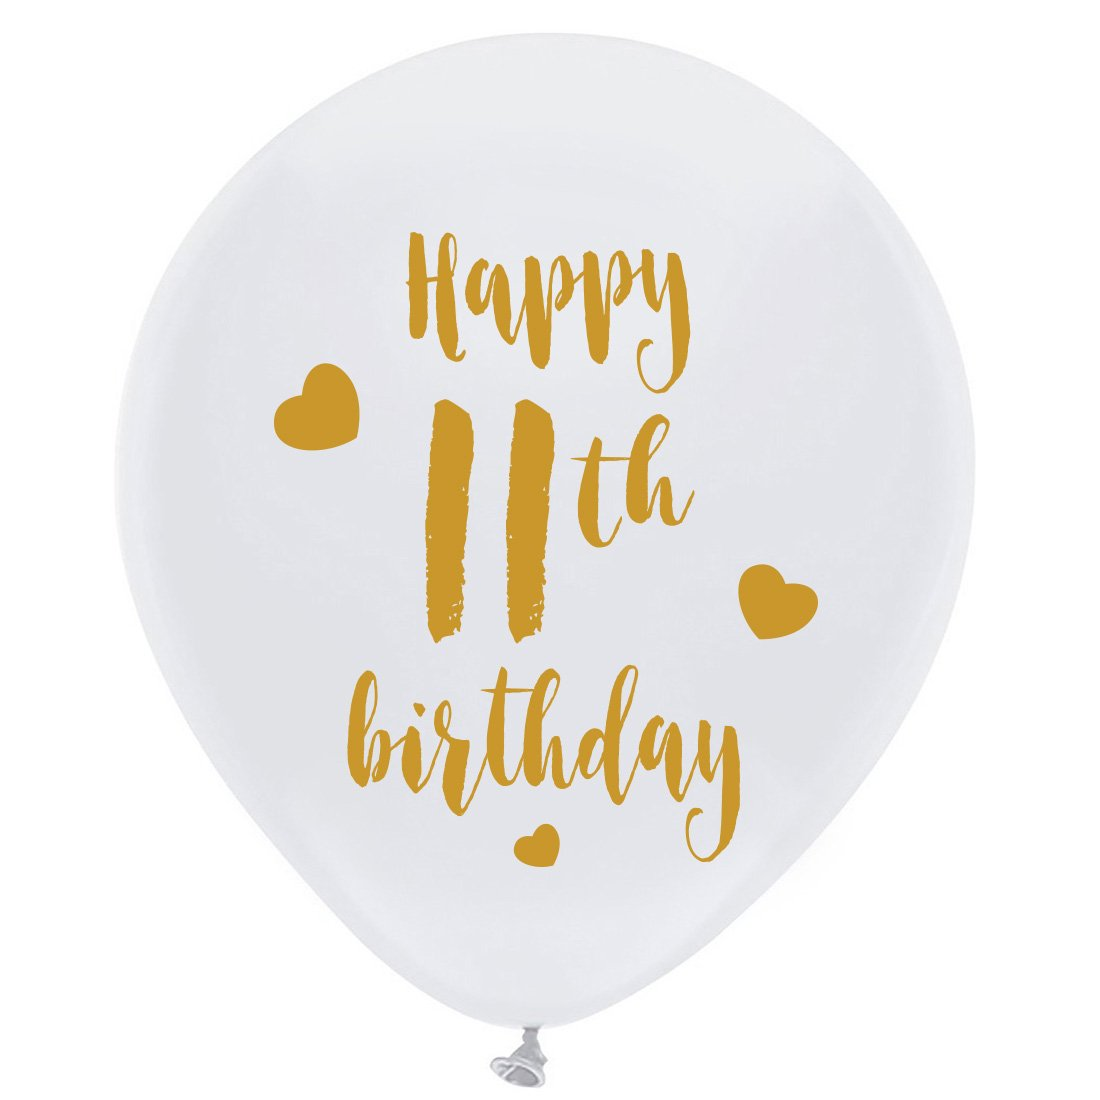 White 11th Birthday Latex Balloons 12inch 16pcs Girl Boy Gold Happy Party Decorations Supplies